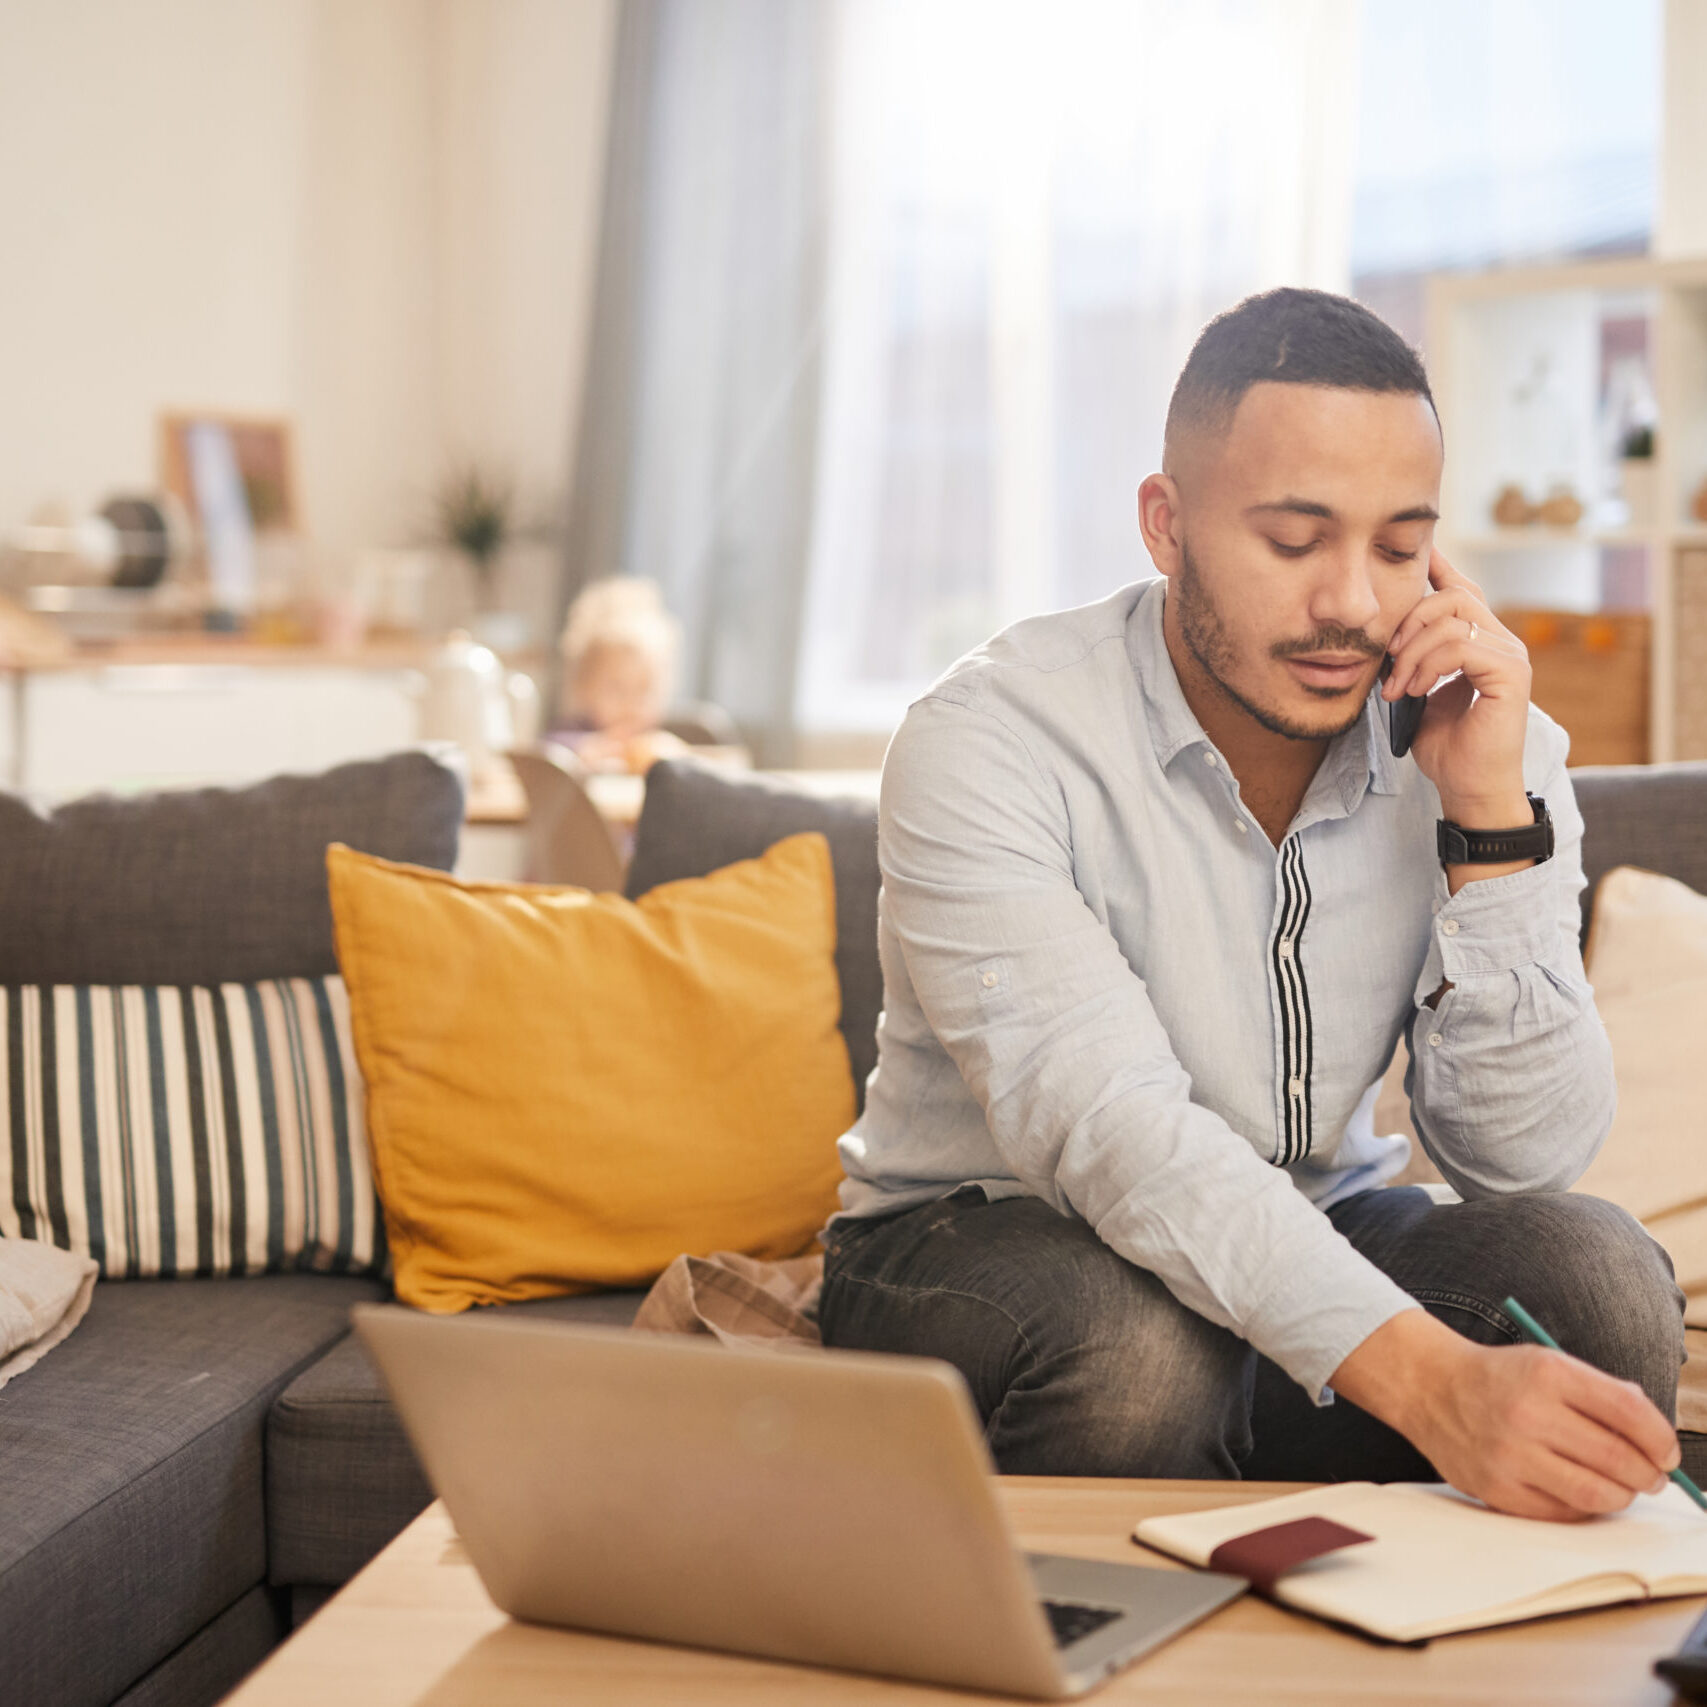 Portrait of modern mixed race man speaking by phone while working from home in cozy interior, copy space